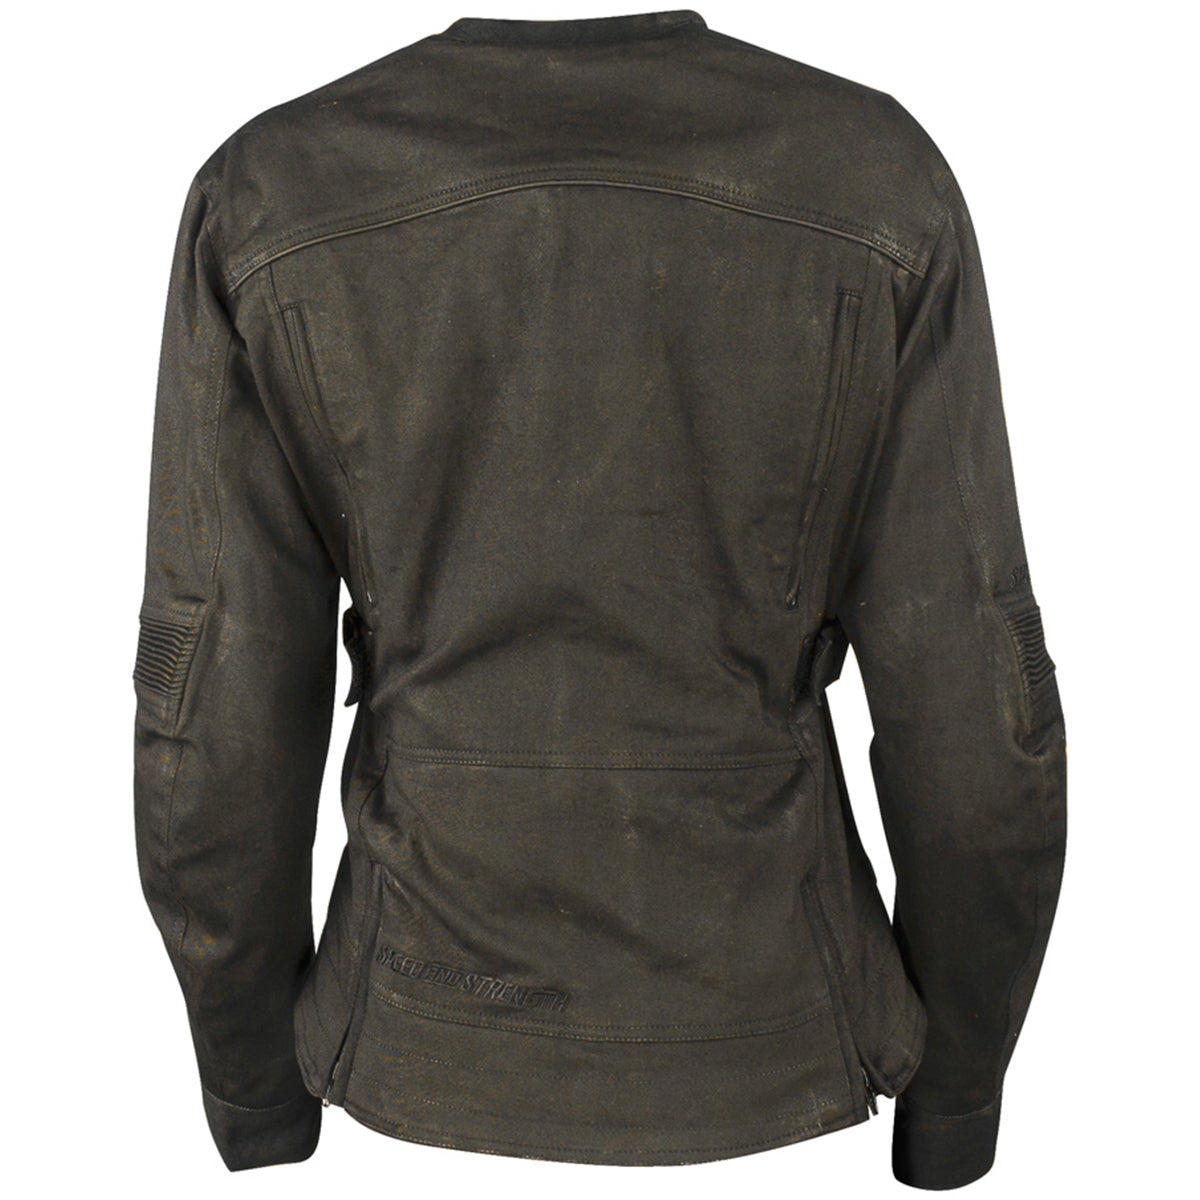 Speed & Strength Motorcycle Gear   Introducing The Fast Times Women's Street Jackets